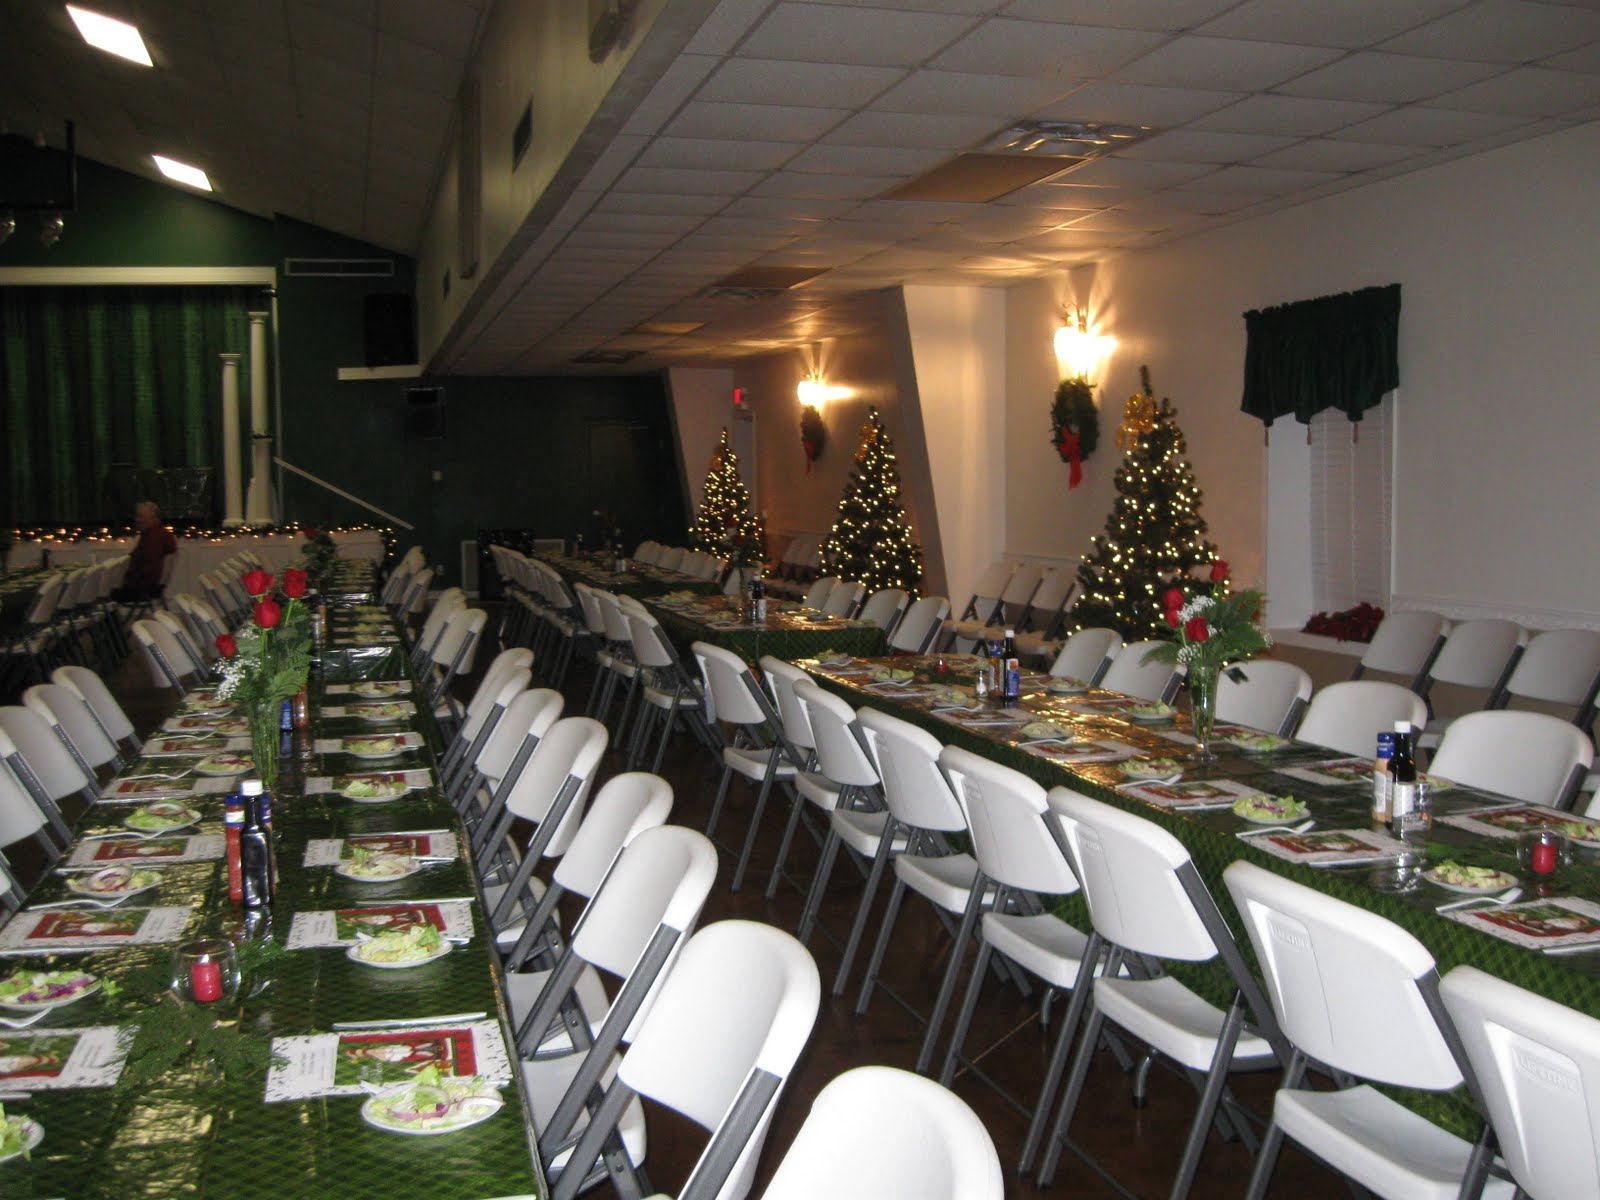 Lincoln Hall A Locally Owned Banquet Facility In Ruston Louisiana Boasts 4 800 60 X 80 Square Foot Room Commercially Equipped Kitchen